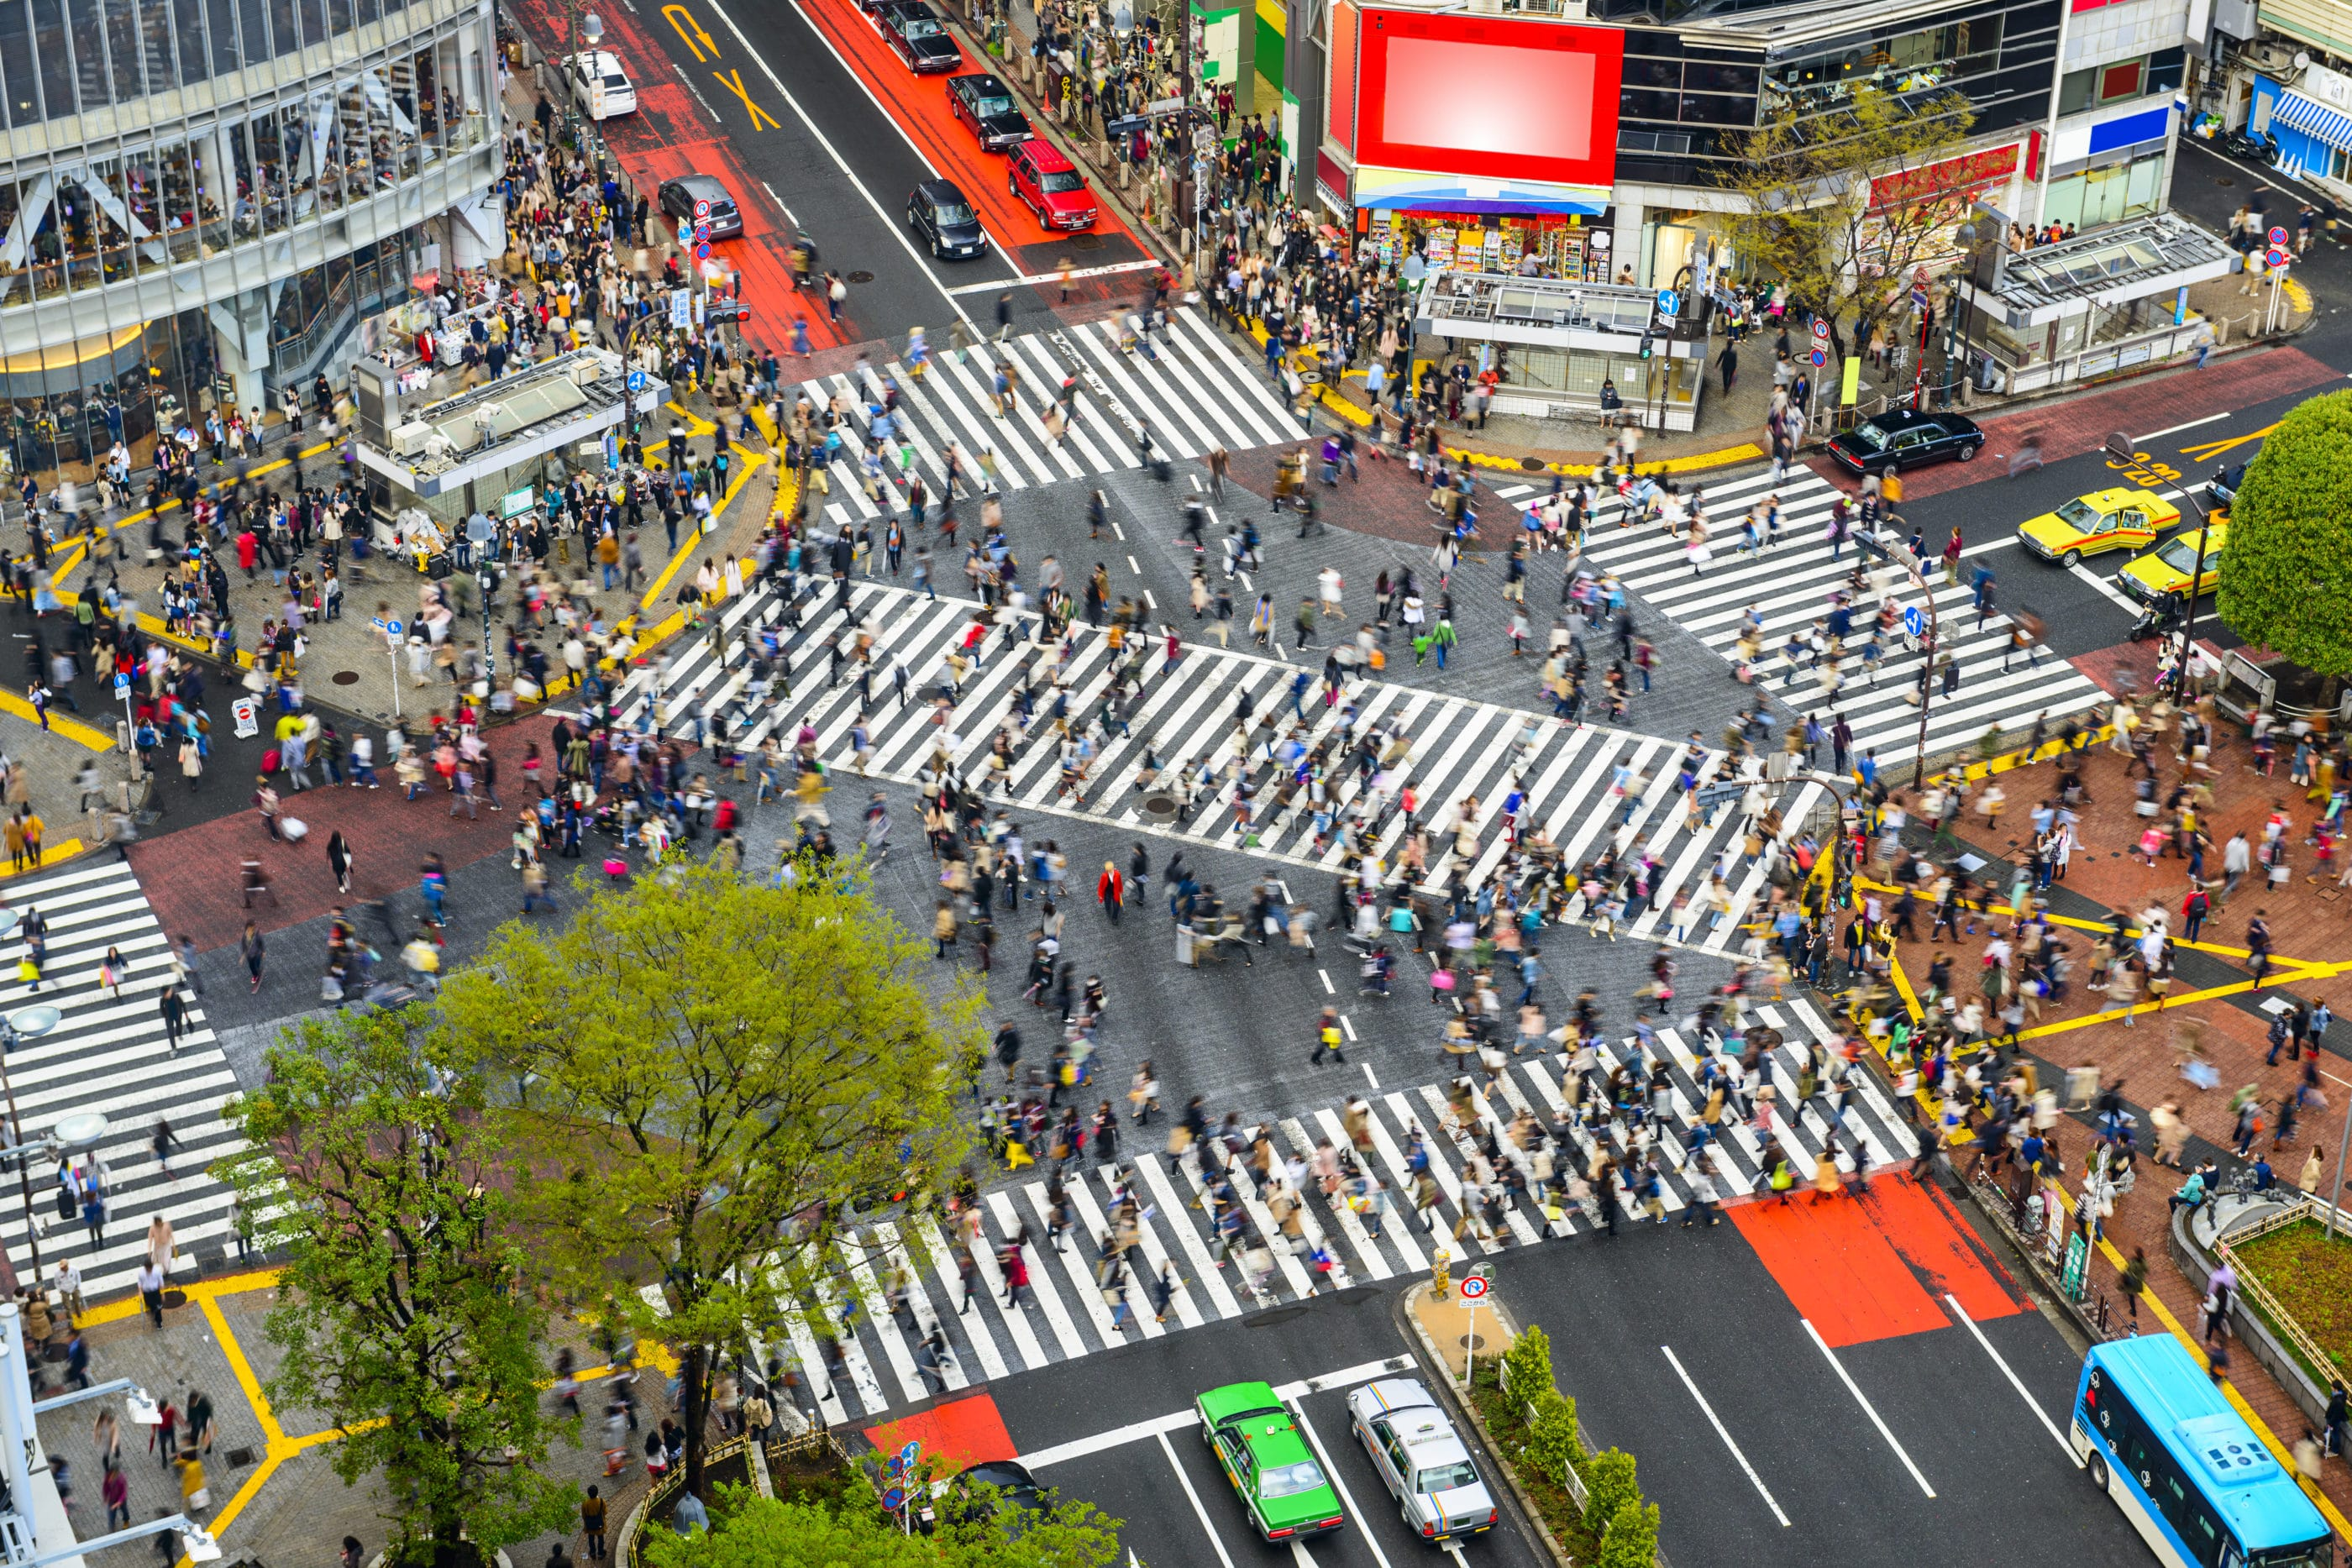 An overhead view of people on the crosswalks of the Shibuya Crossing with traffic stopped in all directions.